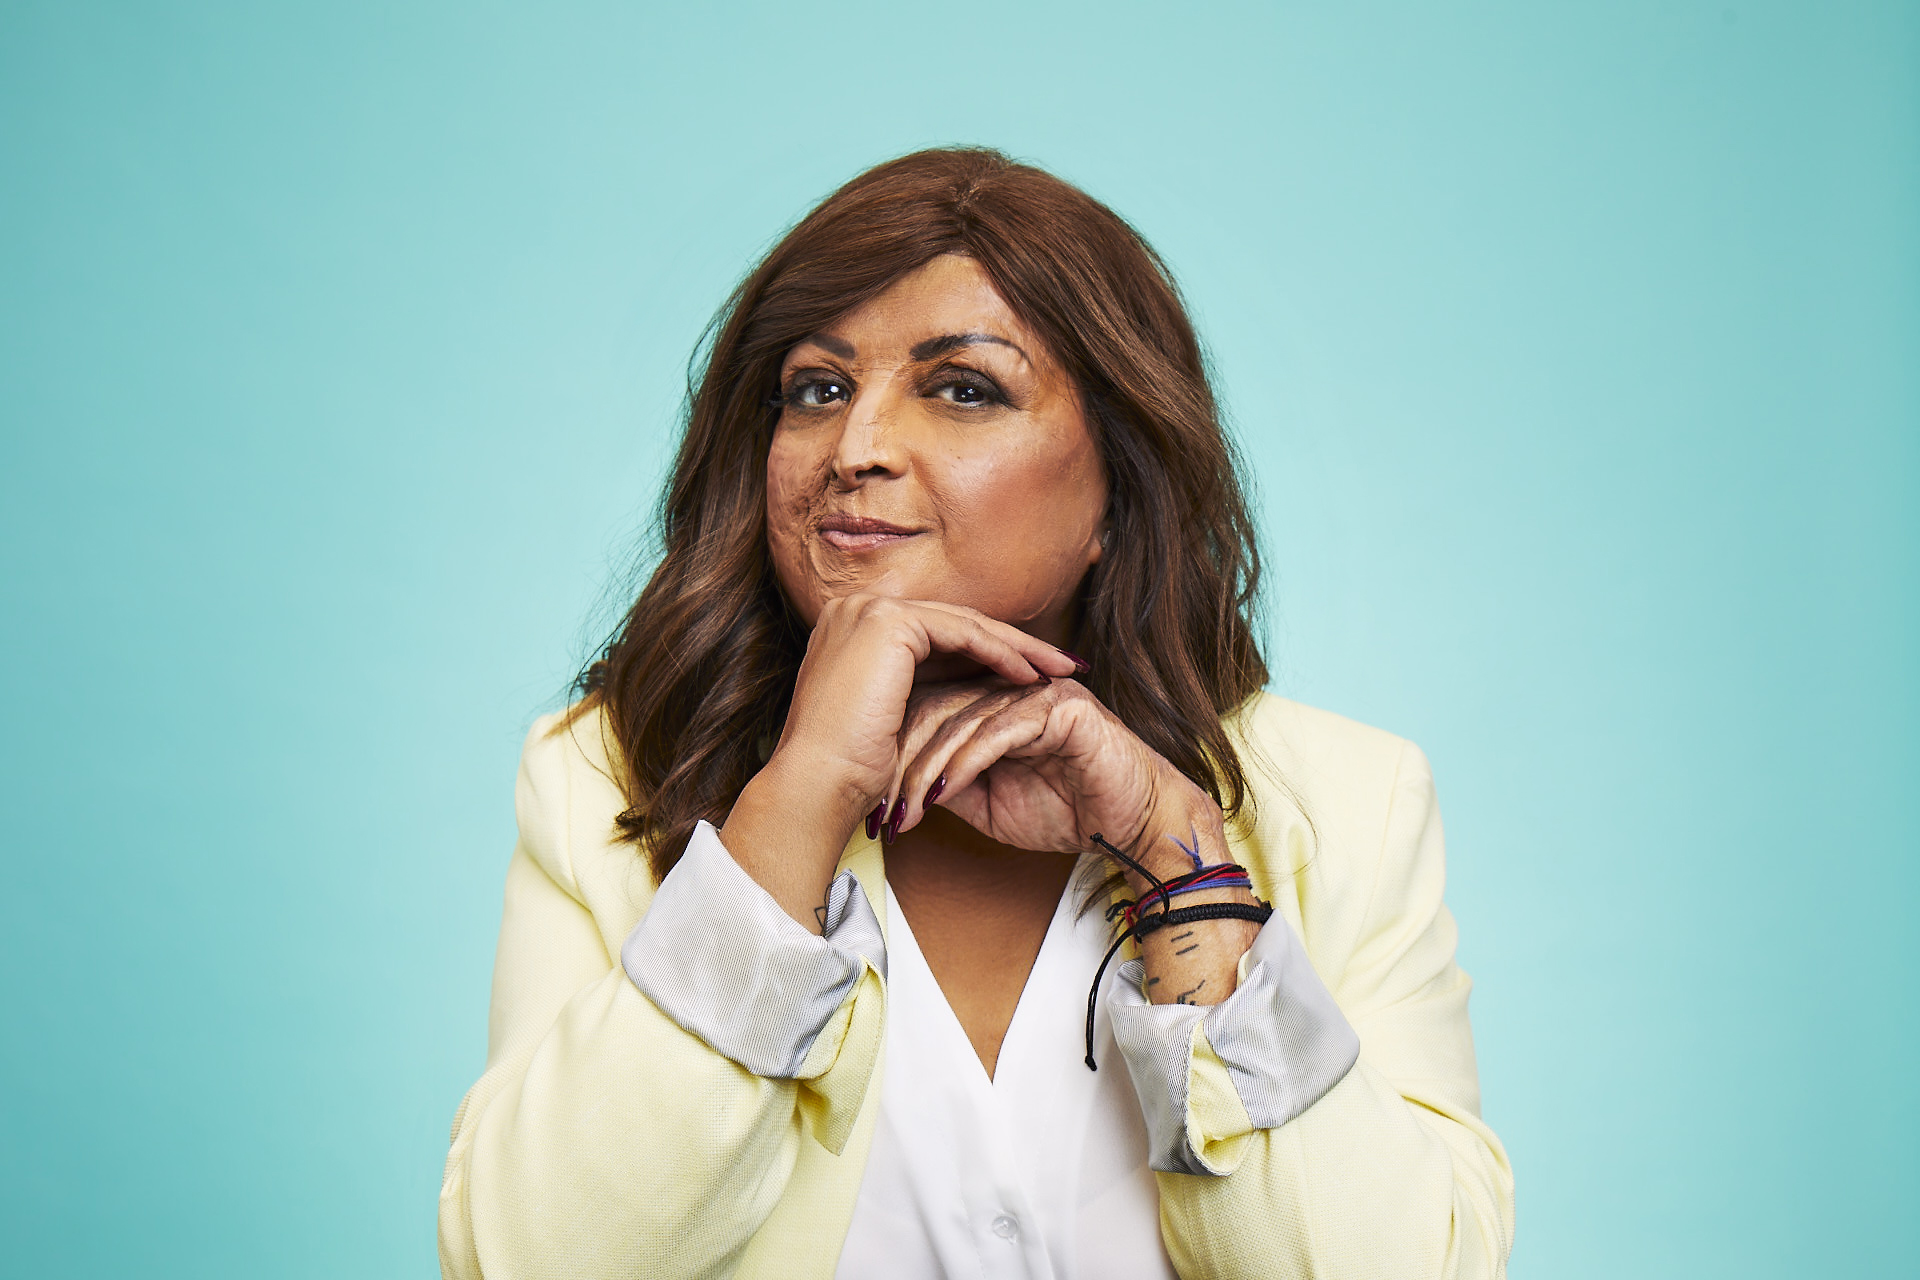 Burns survivor Tulsi sits against a blue background. She has her hands to her face, is smiling, and is wearing a yellow jacket and white shirt.